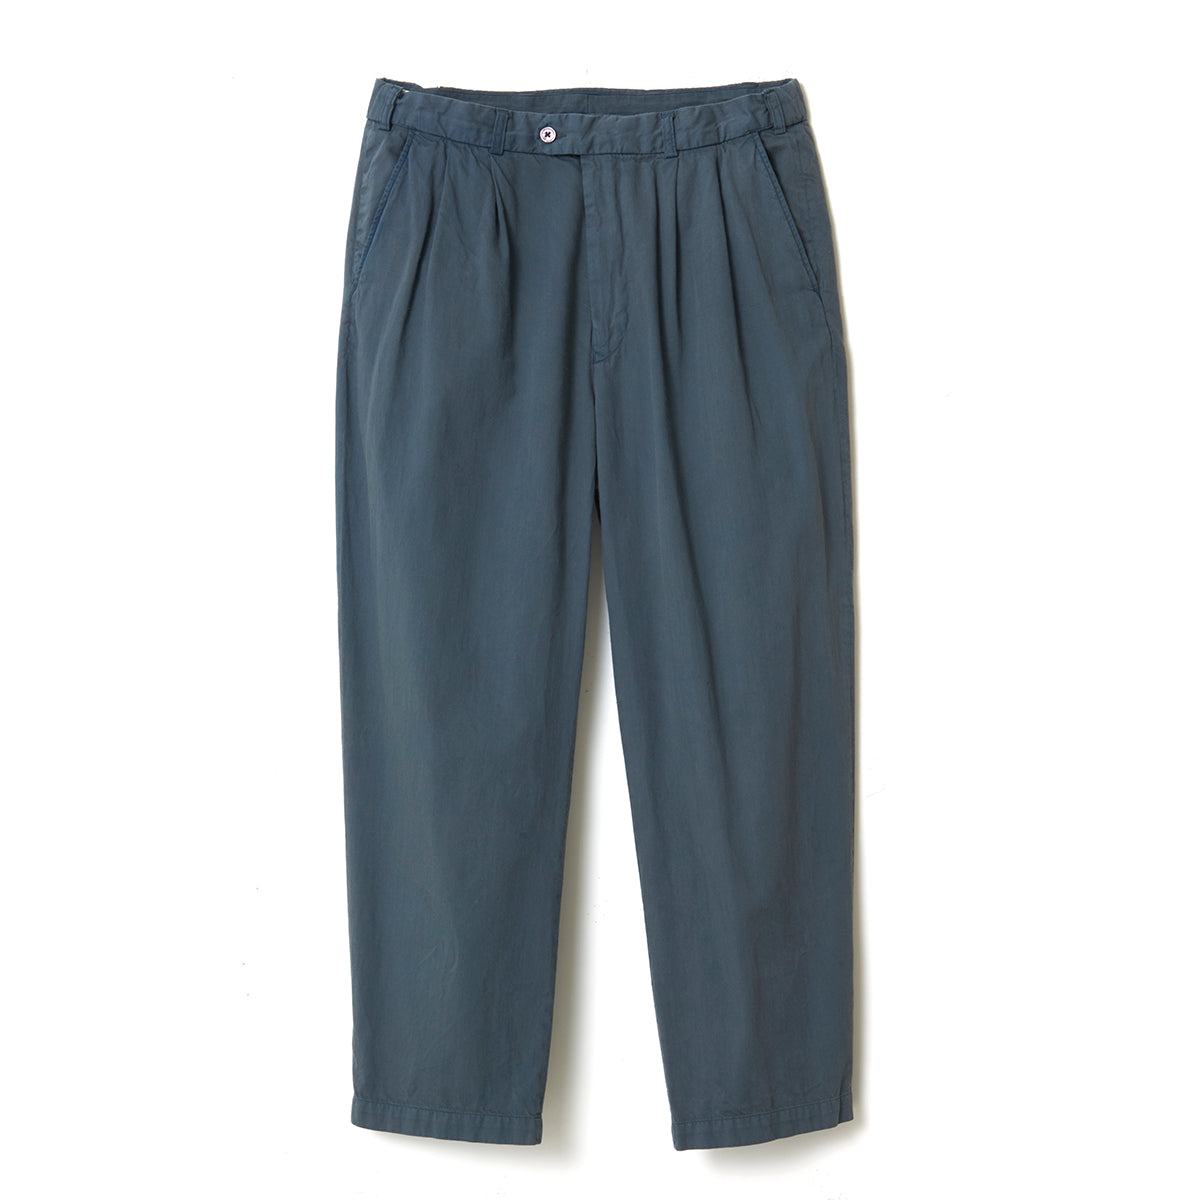 Organic Dyed Pleated Pants / GRAY